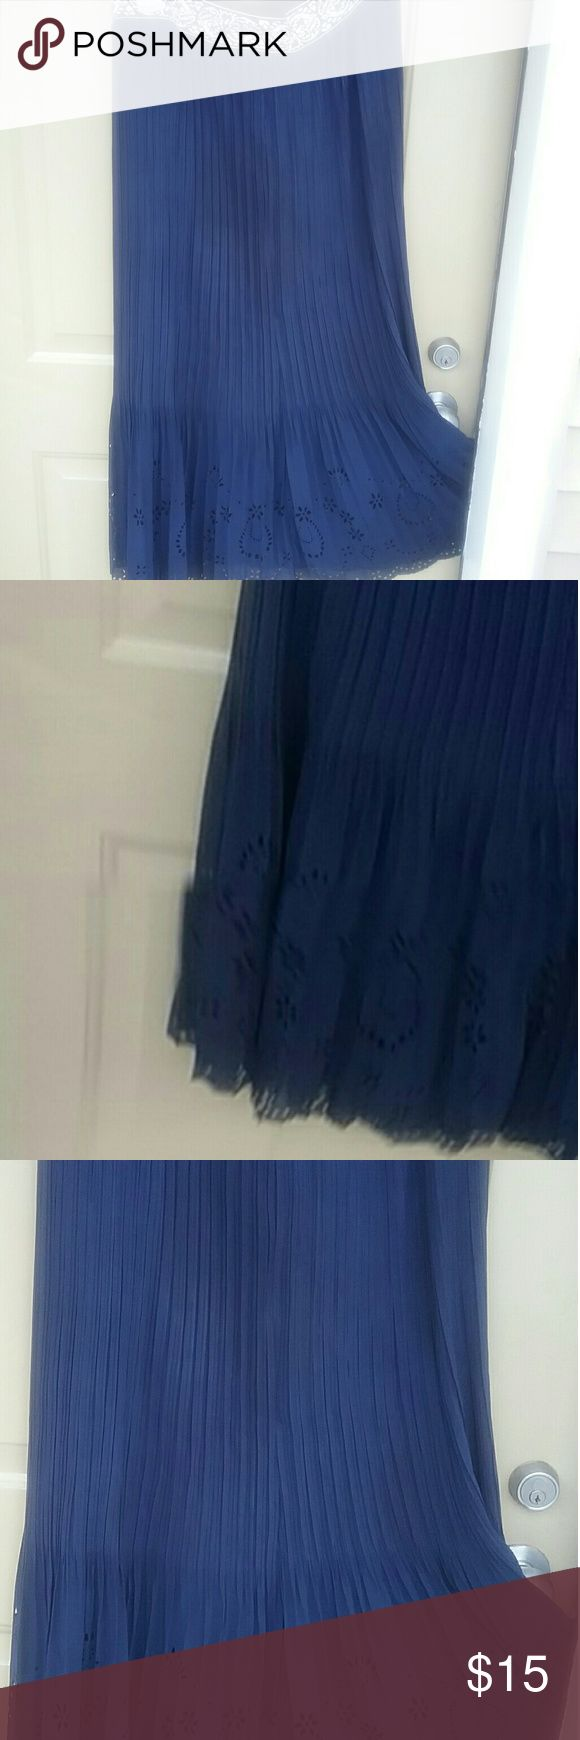 Navy Blue Maxi skirt Navy blue pleats and pretty lace bottom   plus size  lined   true  maxi       just gorgeous  the   short lining  shows through the lace making this a Hi Lo   skirt      Because of the pretty lace you can dress up or down  I'm thinking Bo  Ho        with some cute jeweled sandals Magic Skirts Maxi